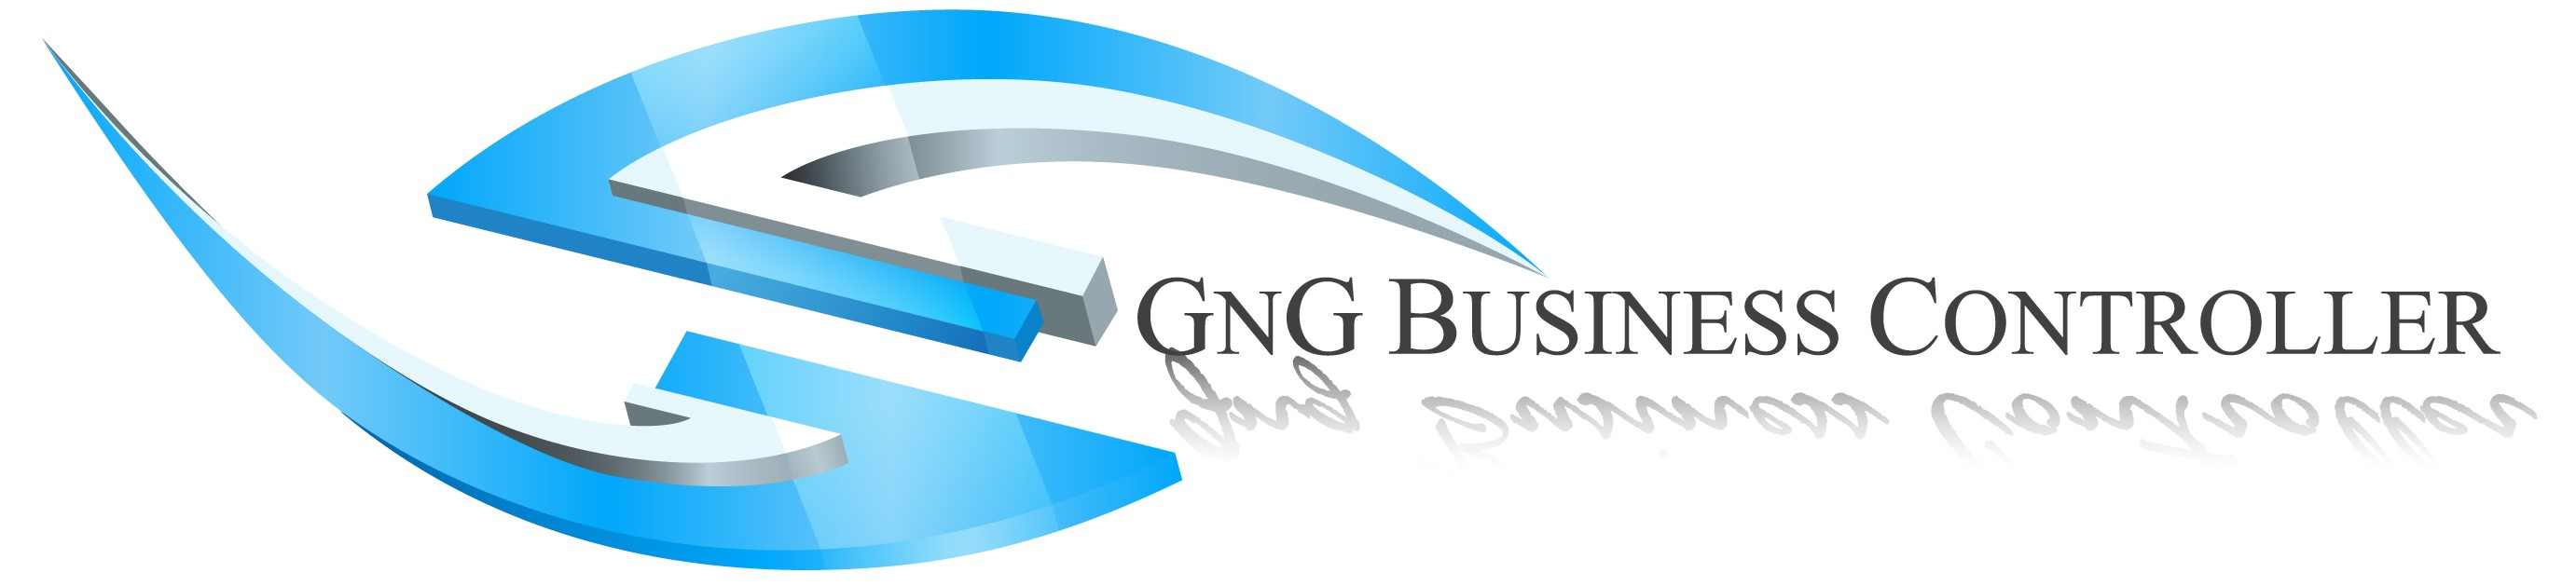 GNG BUSINESS CONTROLLER